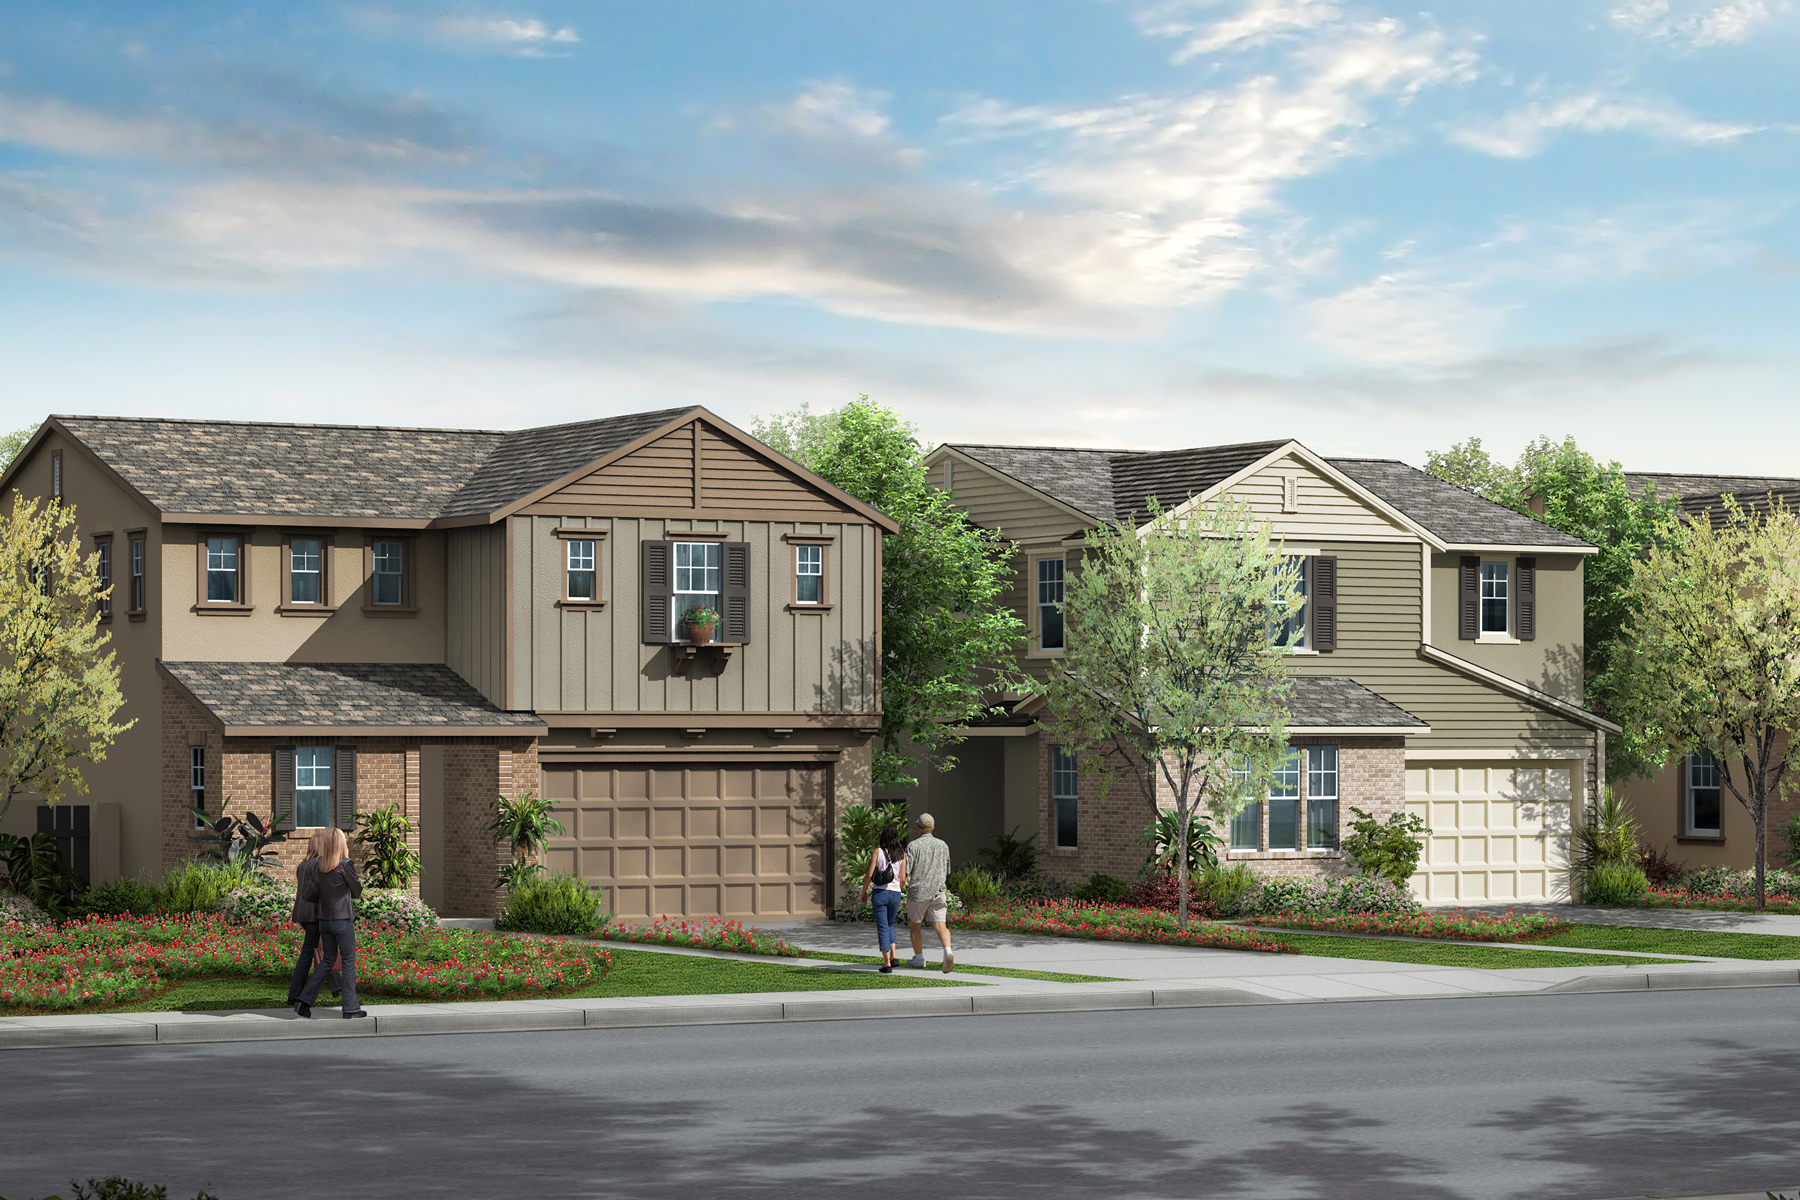 irvine new homes, new irvine homes, irvine real estate, the branches